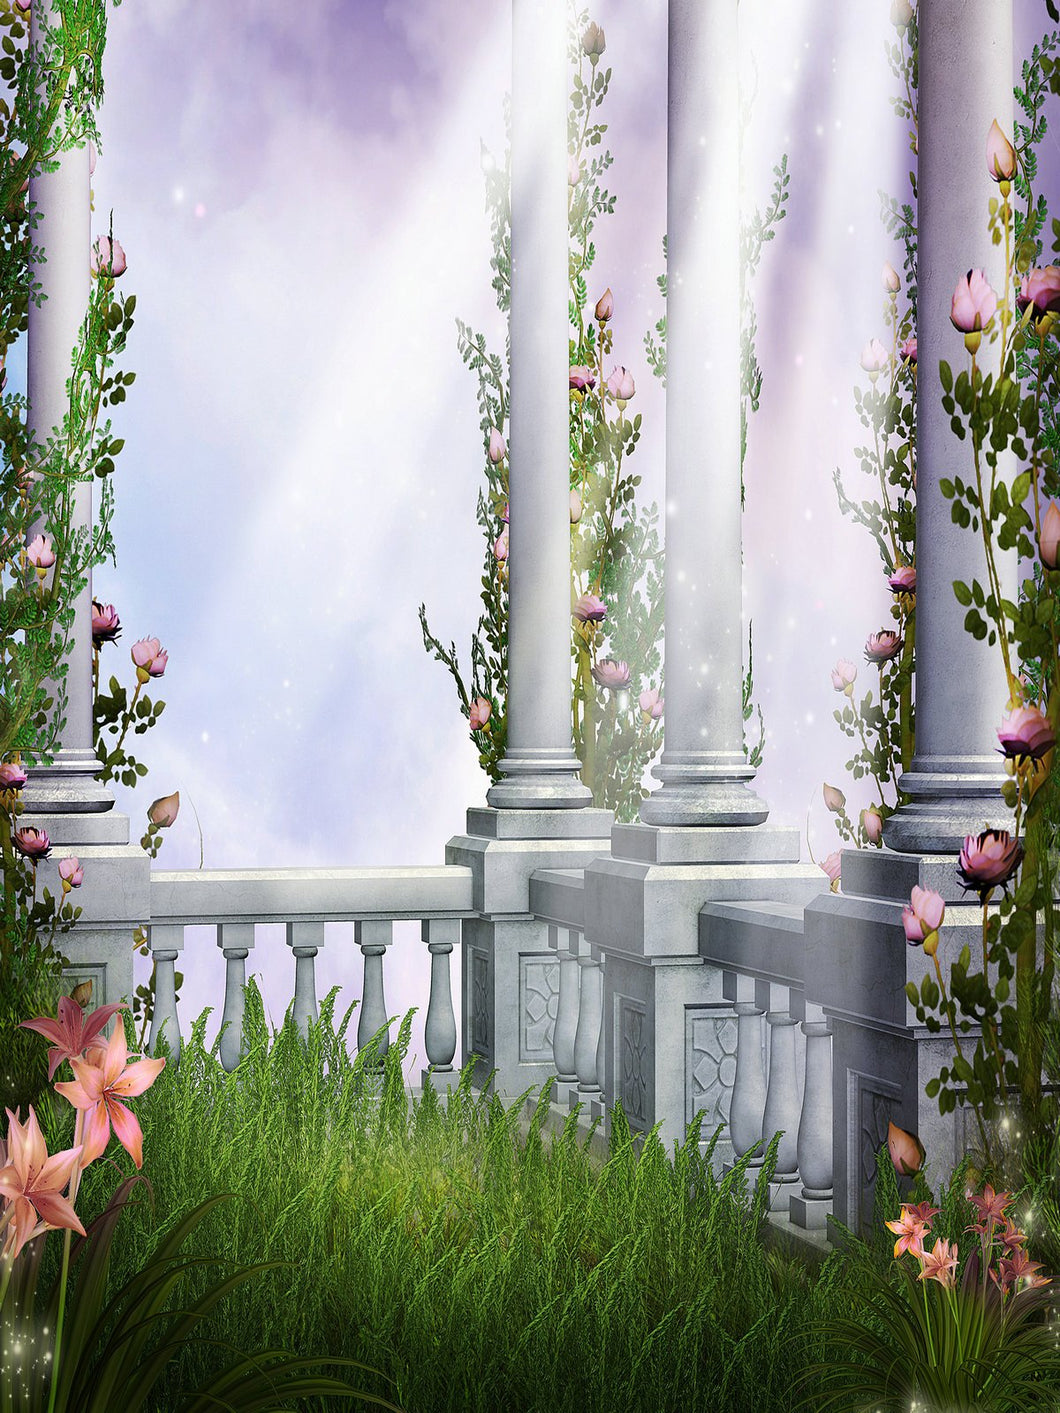 Katebackdrop:Kate Spring Photography Background Green Meadow Photo Castle Pillars